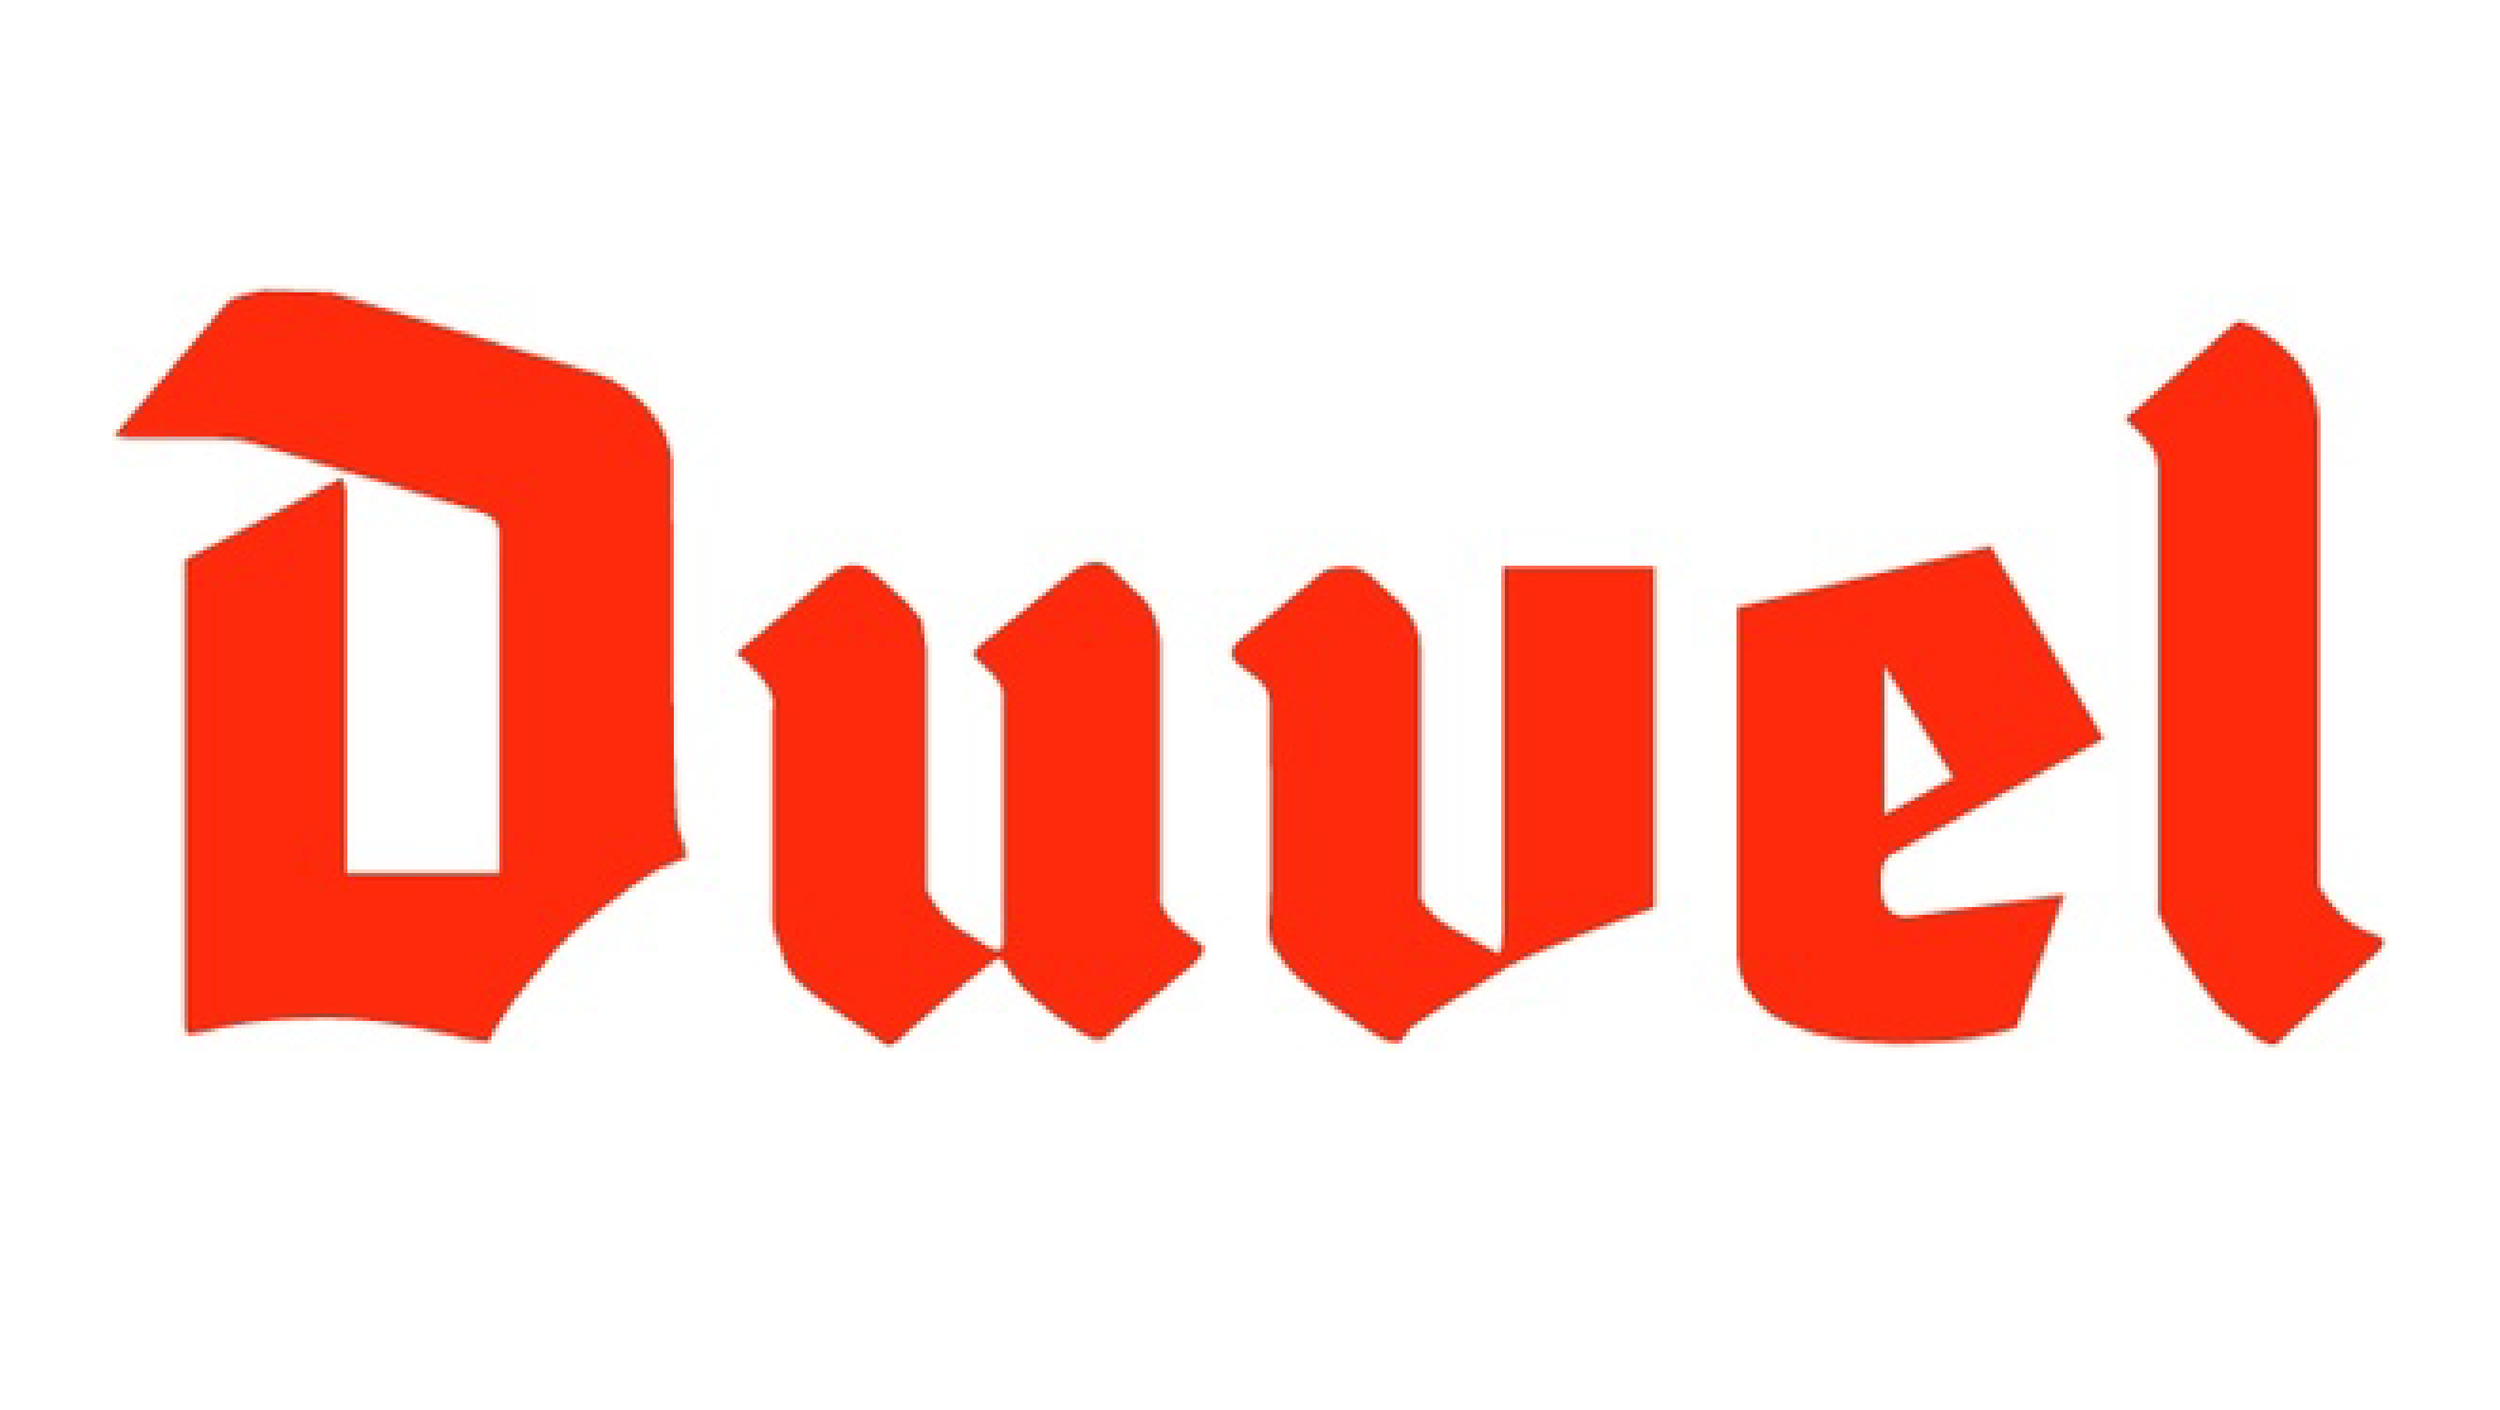 logo's website-hygge_duvel-02.png